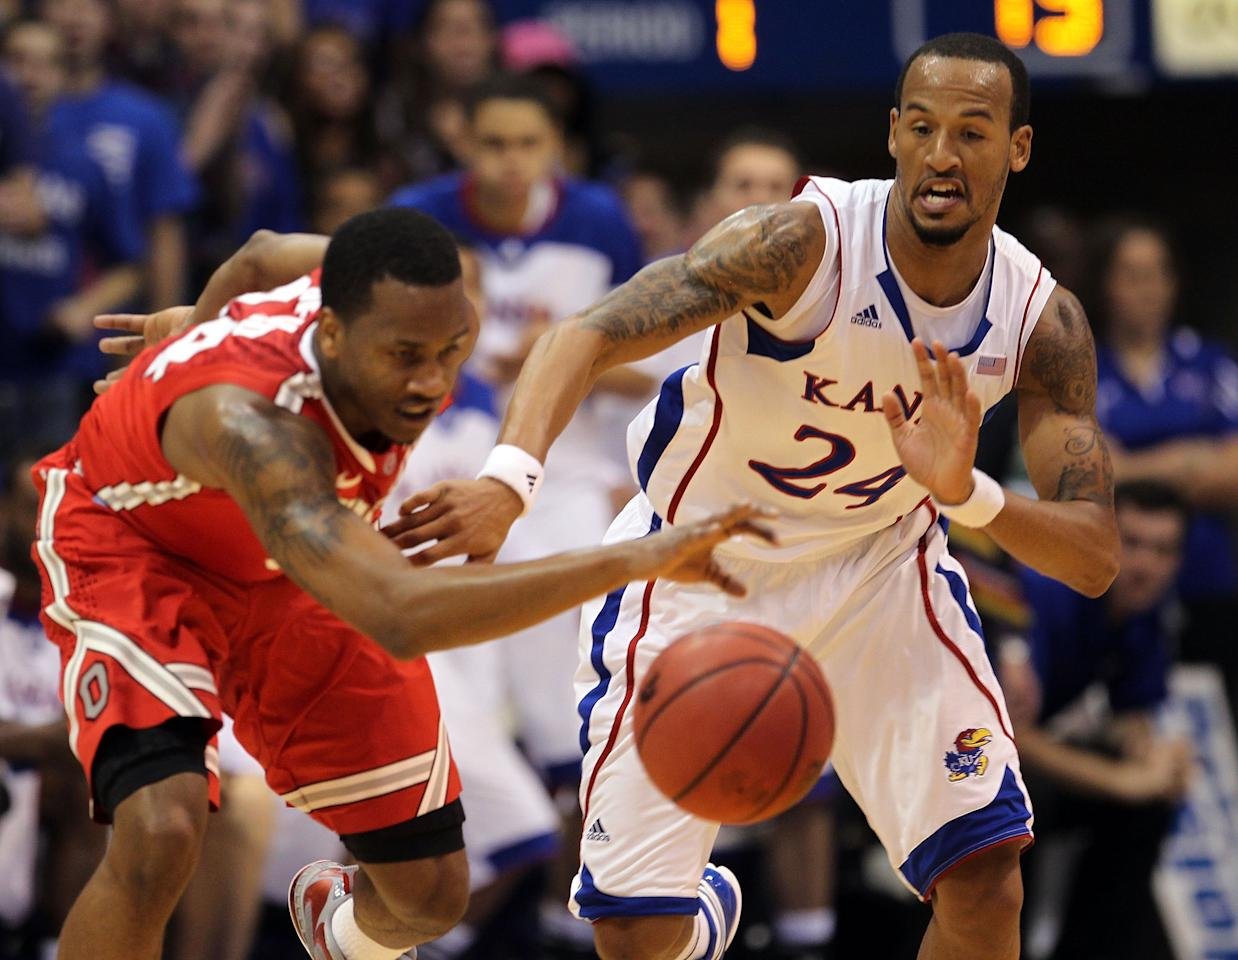 LAWRENCE, KS - DECEMBER 10:  Travis Releford #24 of the Kansas Jayhawks knocks the ball loose from the hands of William Buford #44 of the Ohio State Buckeyes during the game on December 10, 2011 at Allen Fieldhouse in Lawrence, Kansas.  (Photo by Jamie Squire/Getty Images)